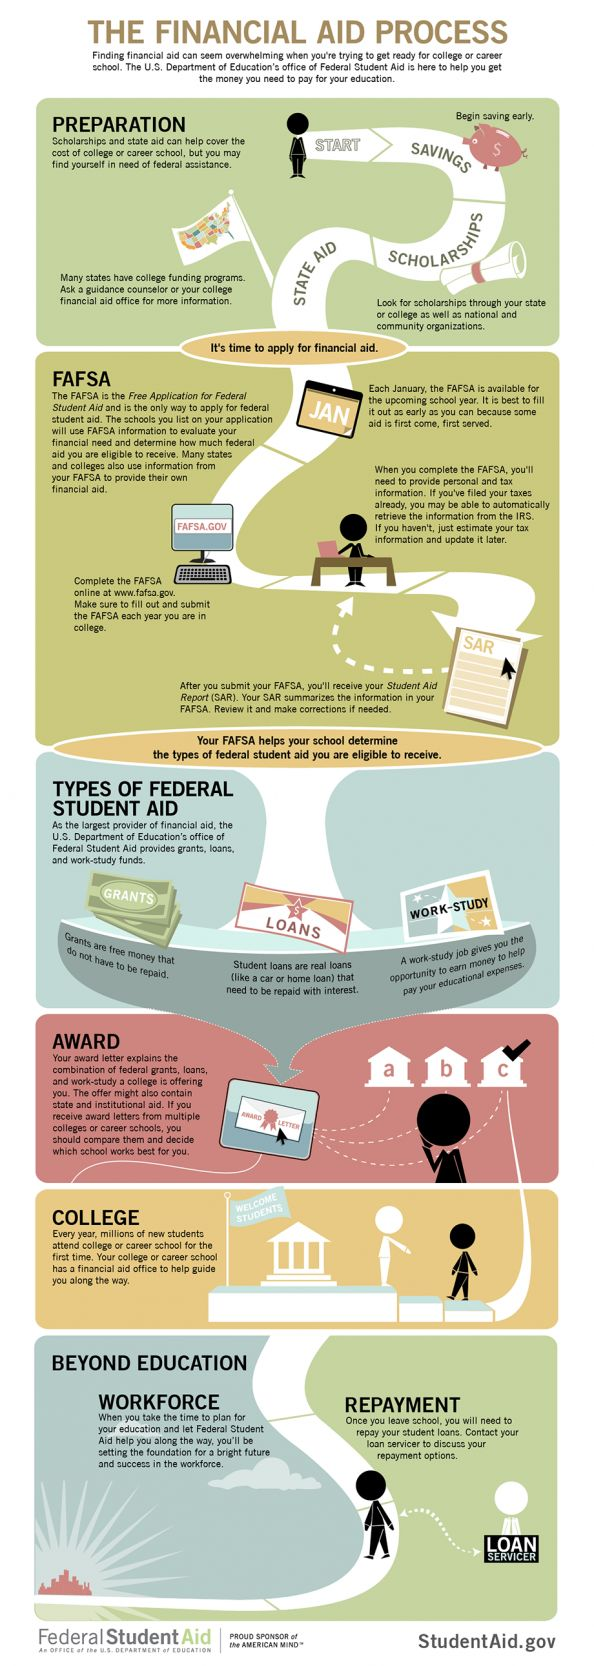 images about college career usa today federal student aid this is a link to the federal student aid website and has all sorts of information on how to prepare for college such as a check list